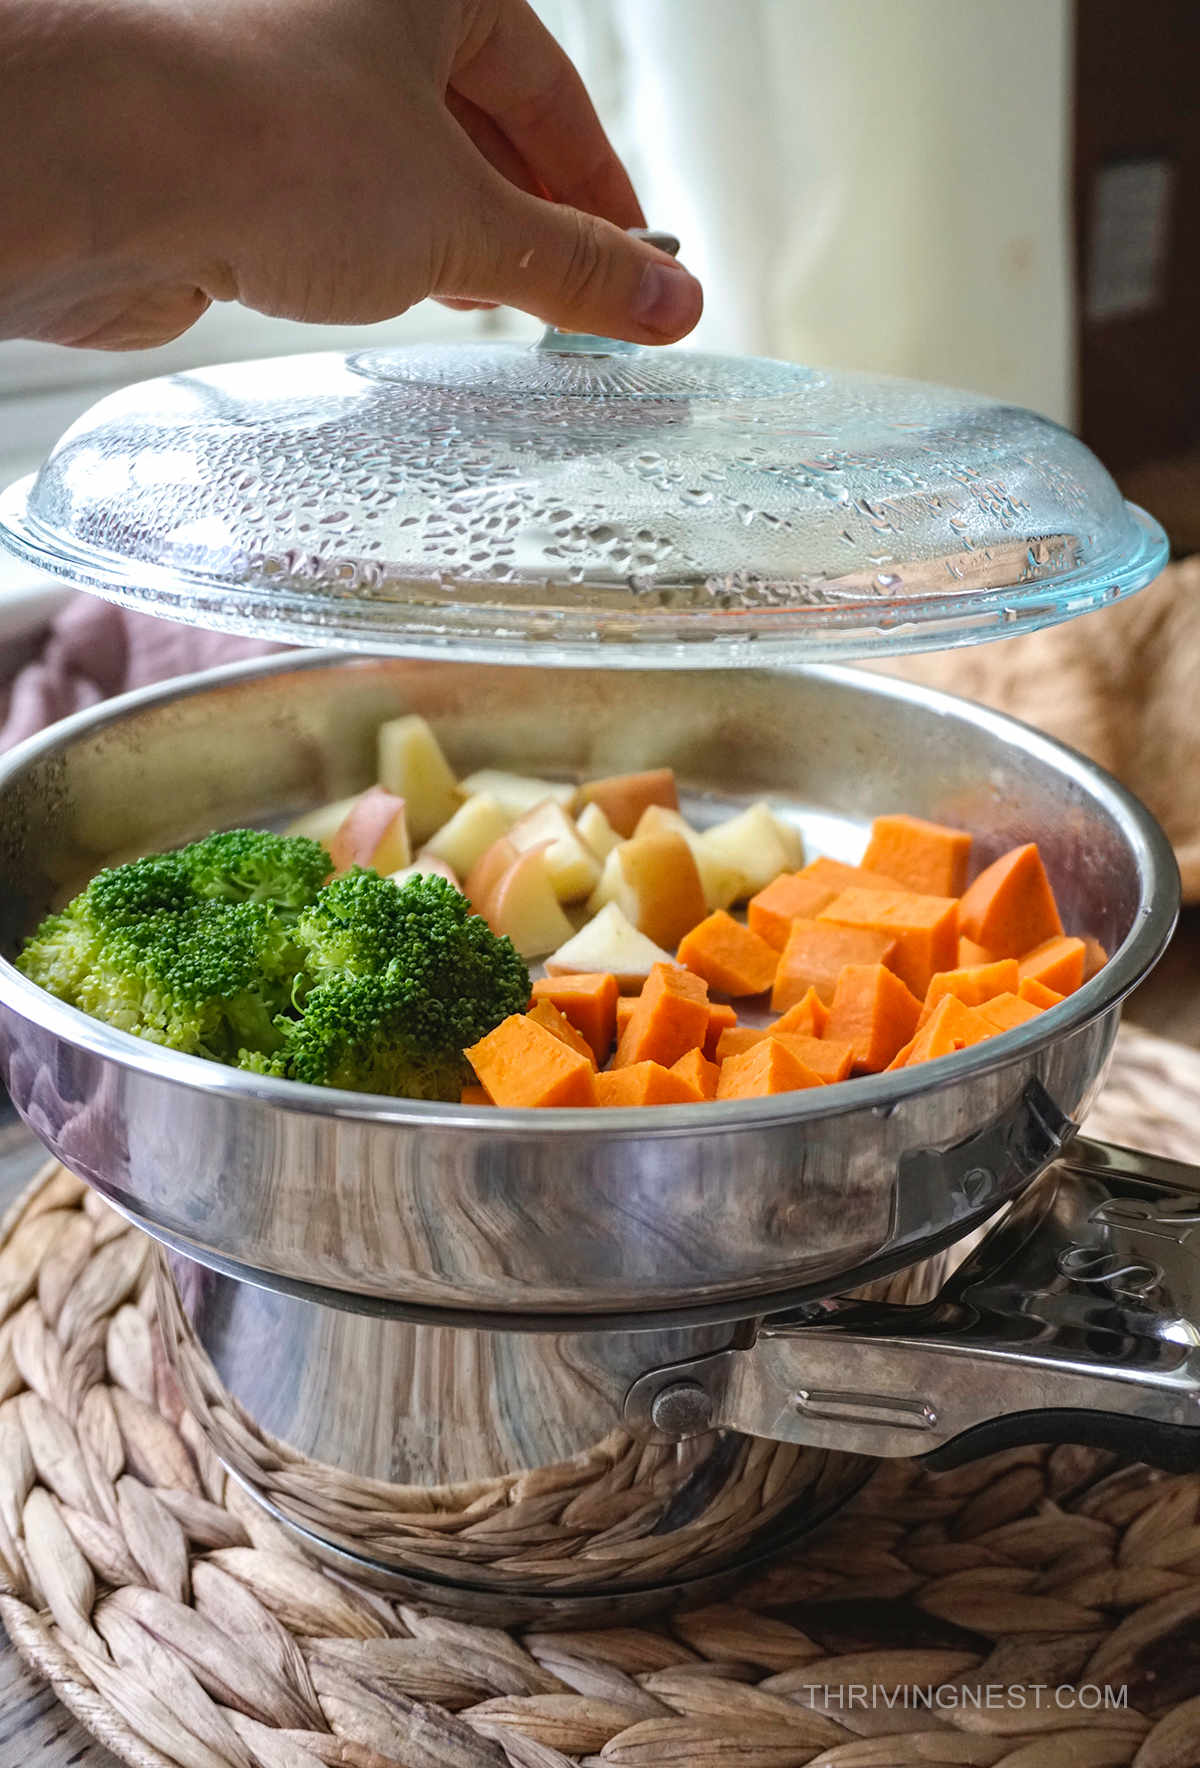 Steaming broccoli, sweet potato and apple for baby food.